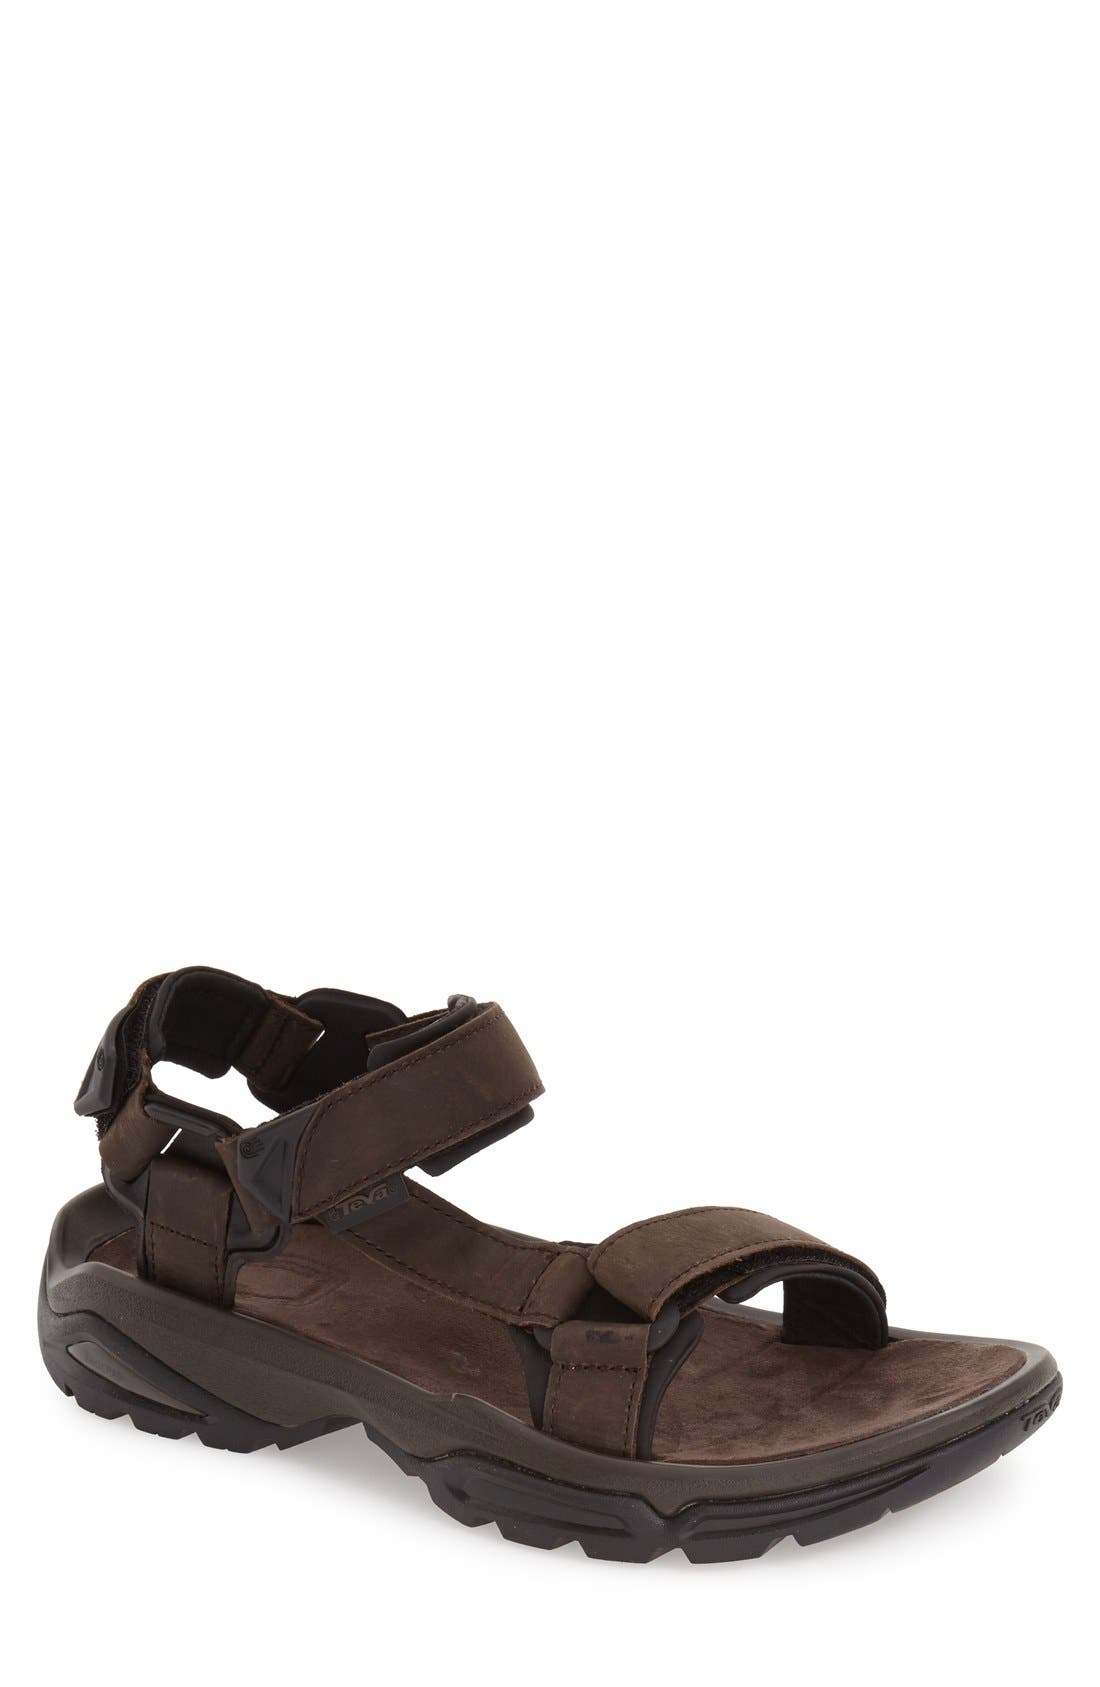 'Terra Fi 4' Sport Sandal,                             Main thumbnail 1, color,                             TURKISH COFFEE